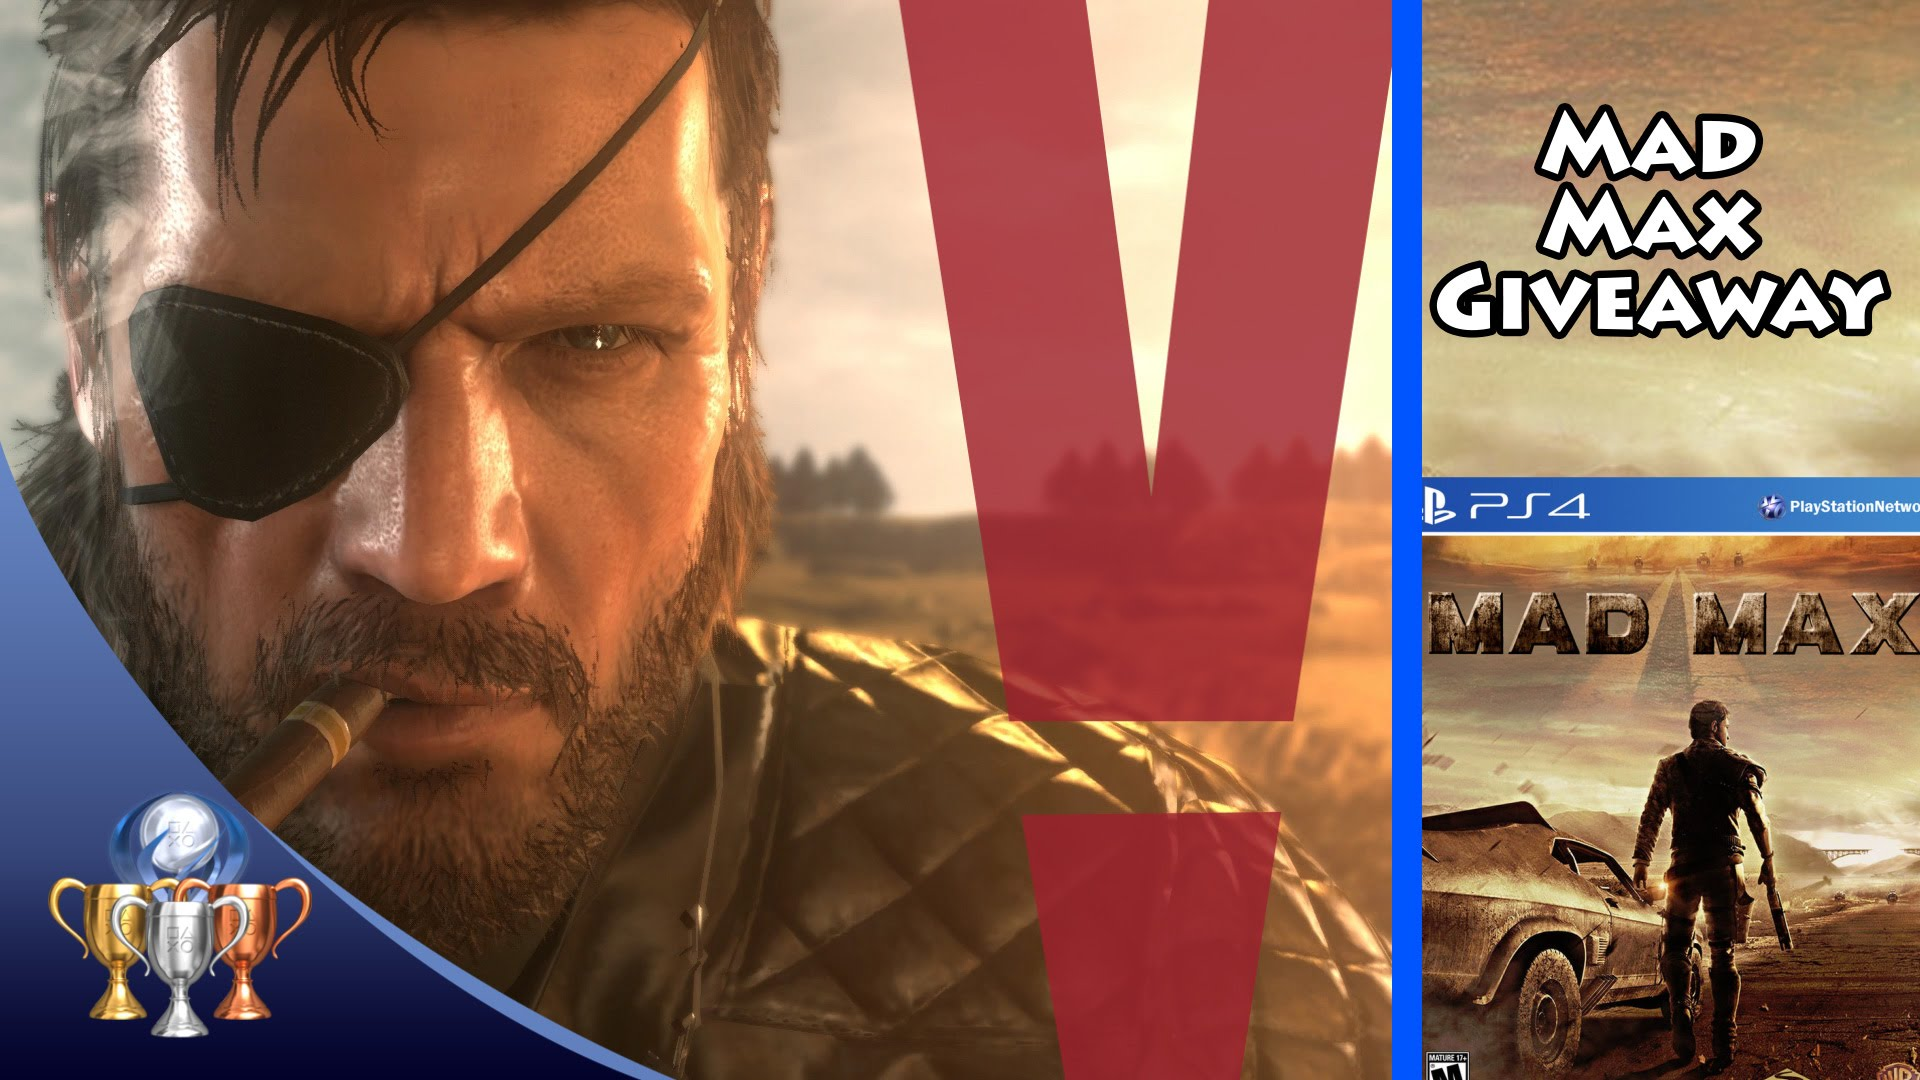 The Trophy Show – Why MGS 5 The Phantom Pain is not my GOTY (Mad Max